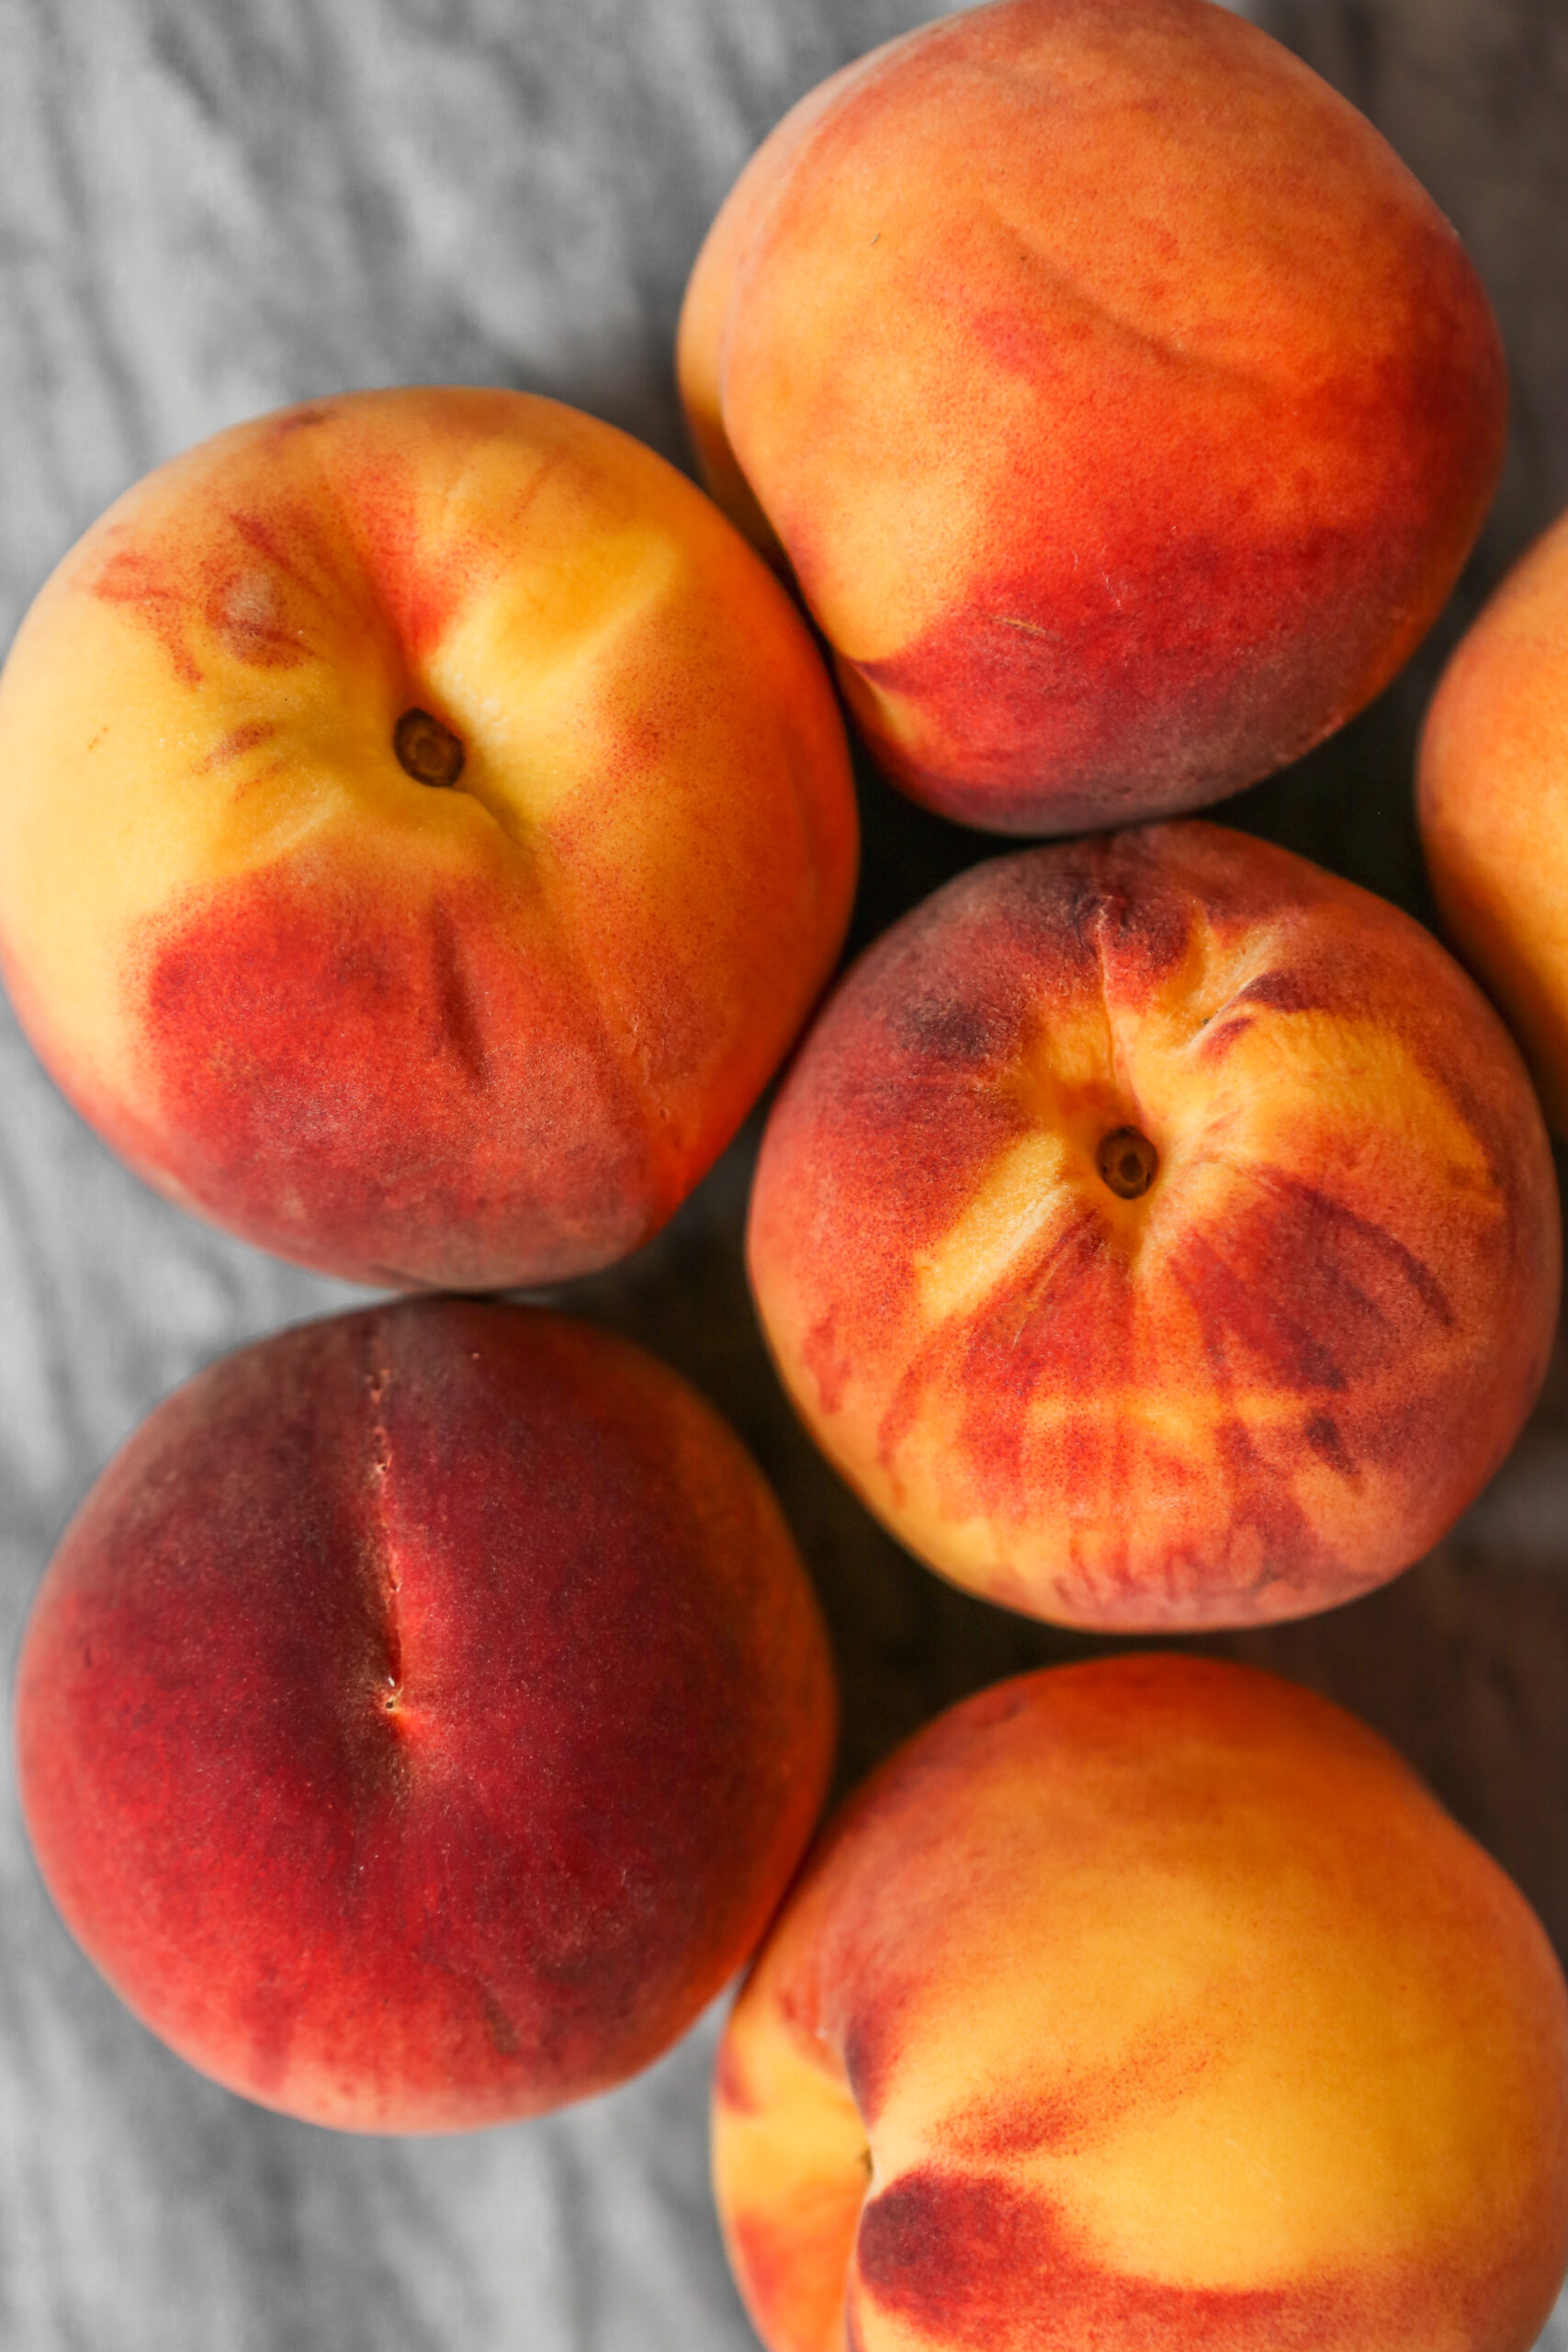 Ripe peaches arranged on a marble surface. Food photography